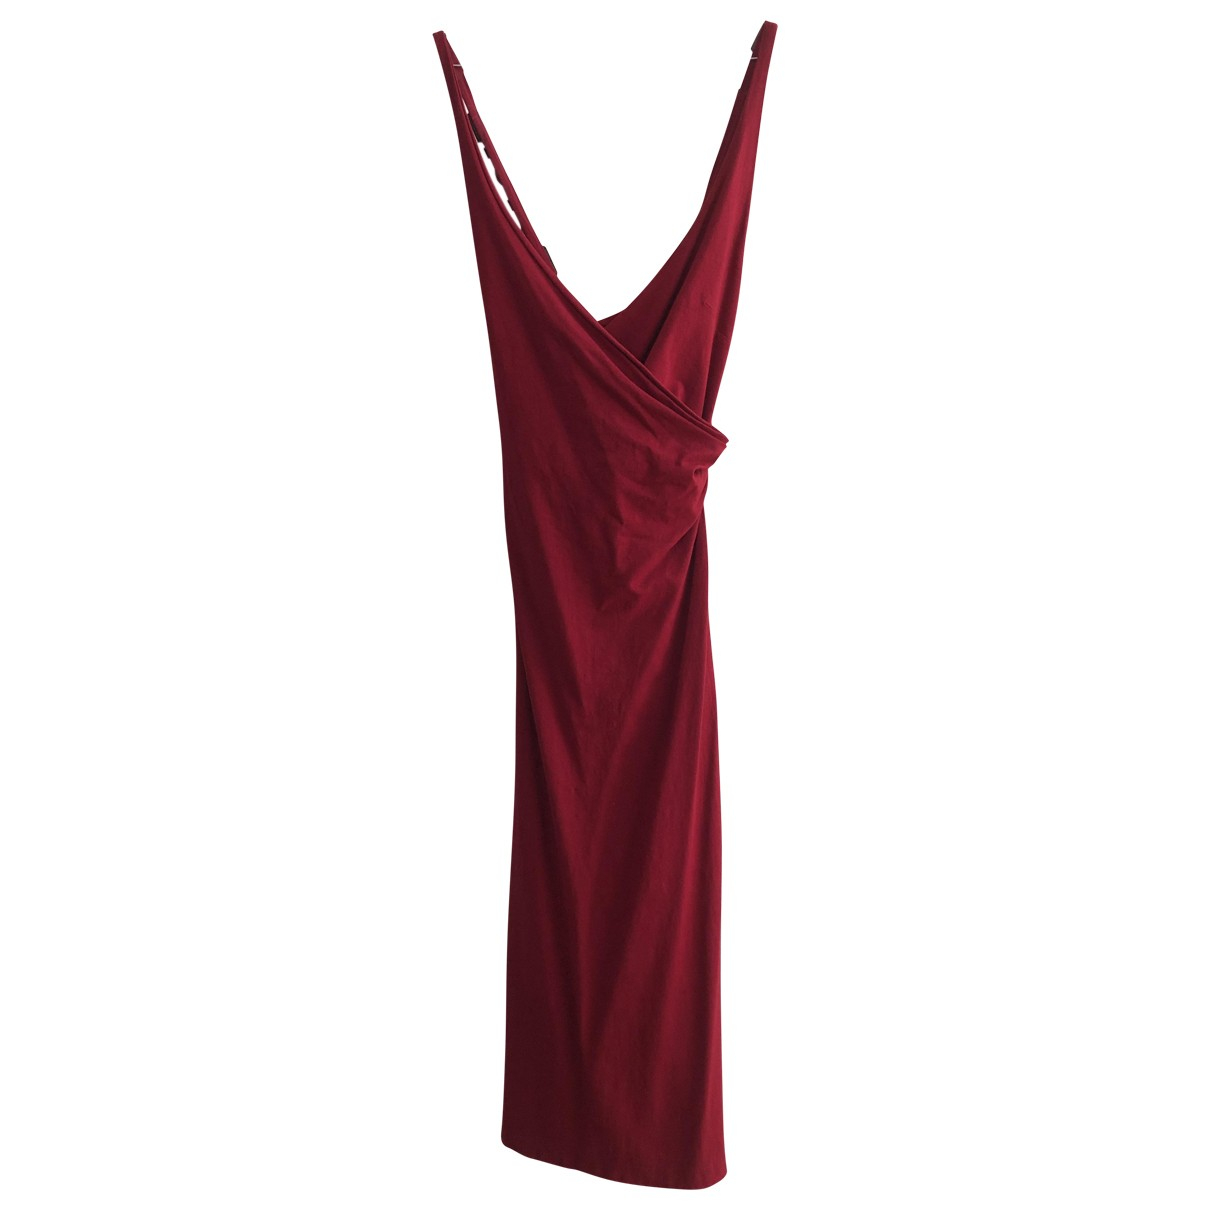 Maliparmi \N Red dress for Women 44 IT